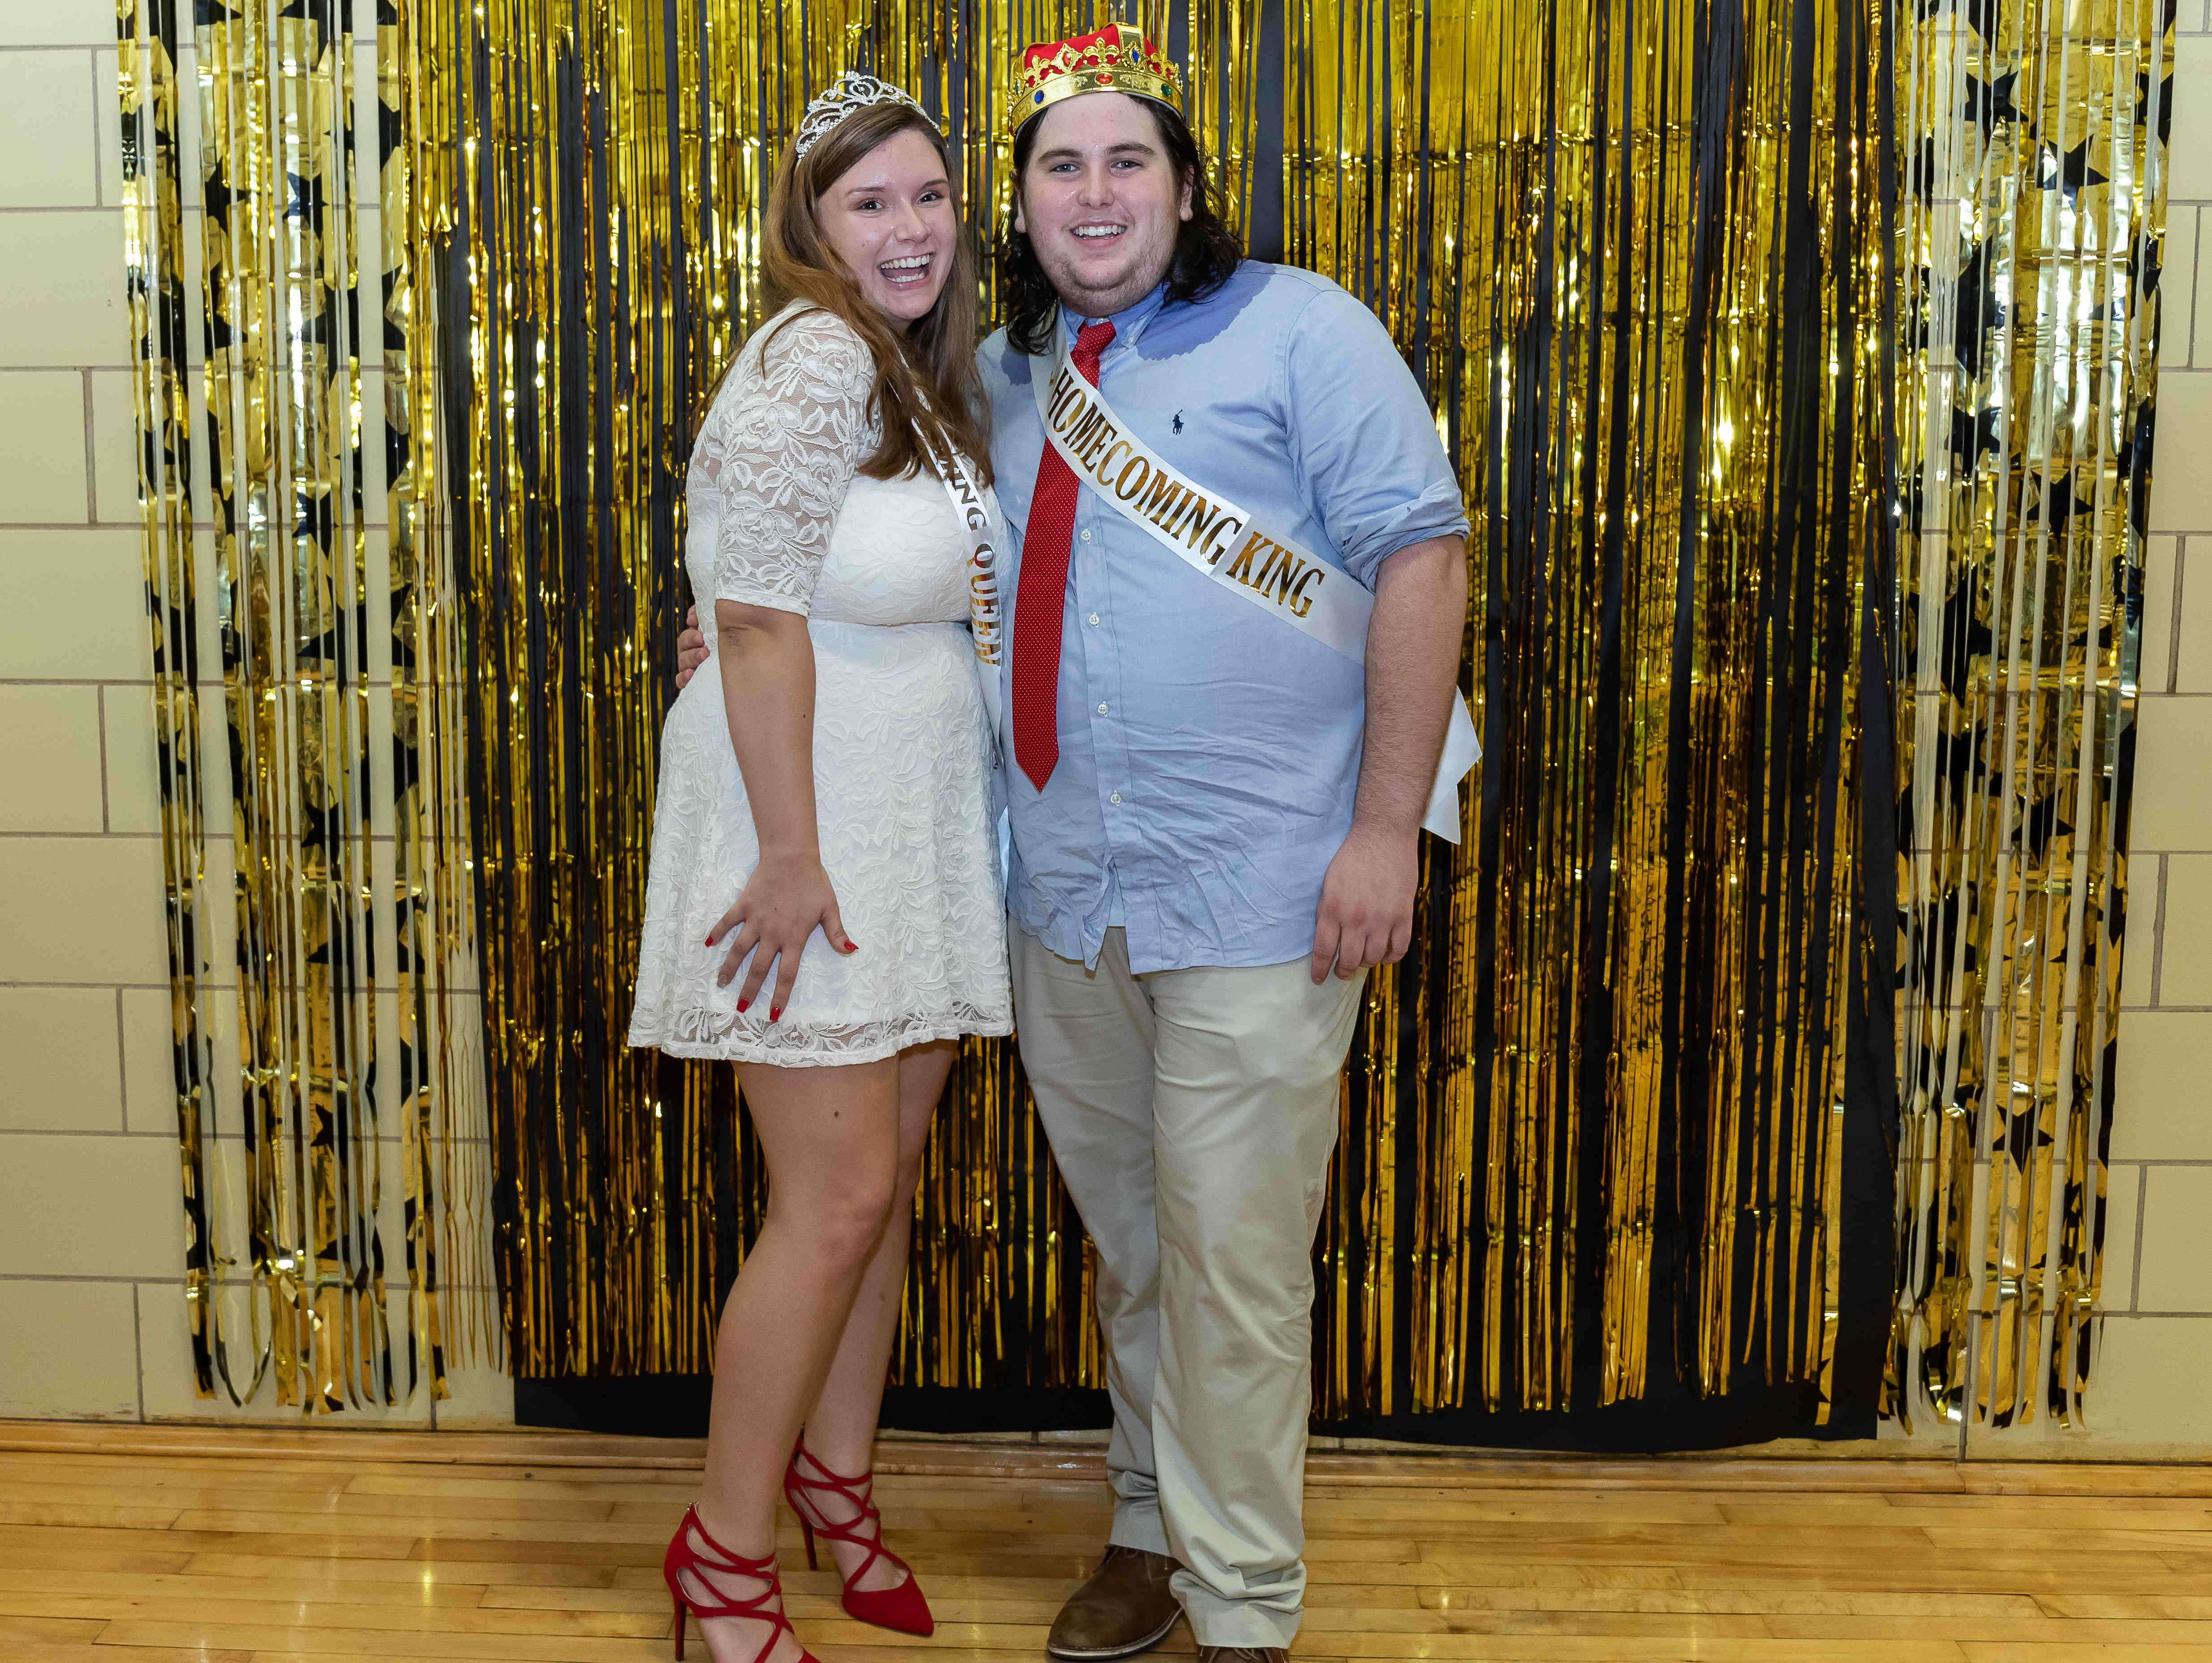 Senior Homecoming King and Queen Mackenzie Moore and Josh Elrod.